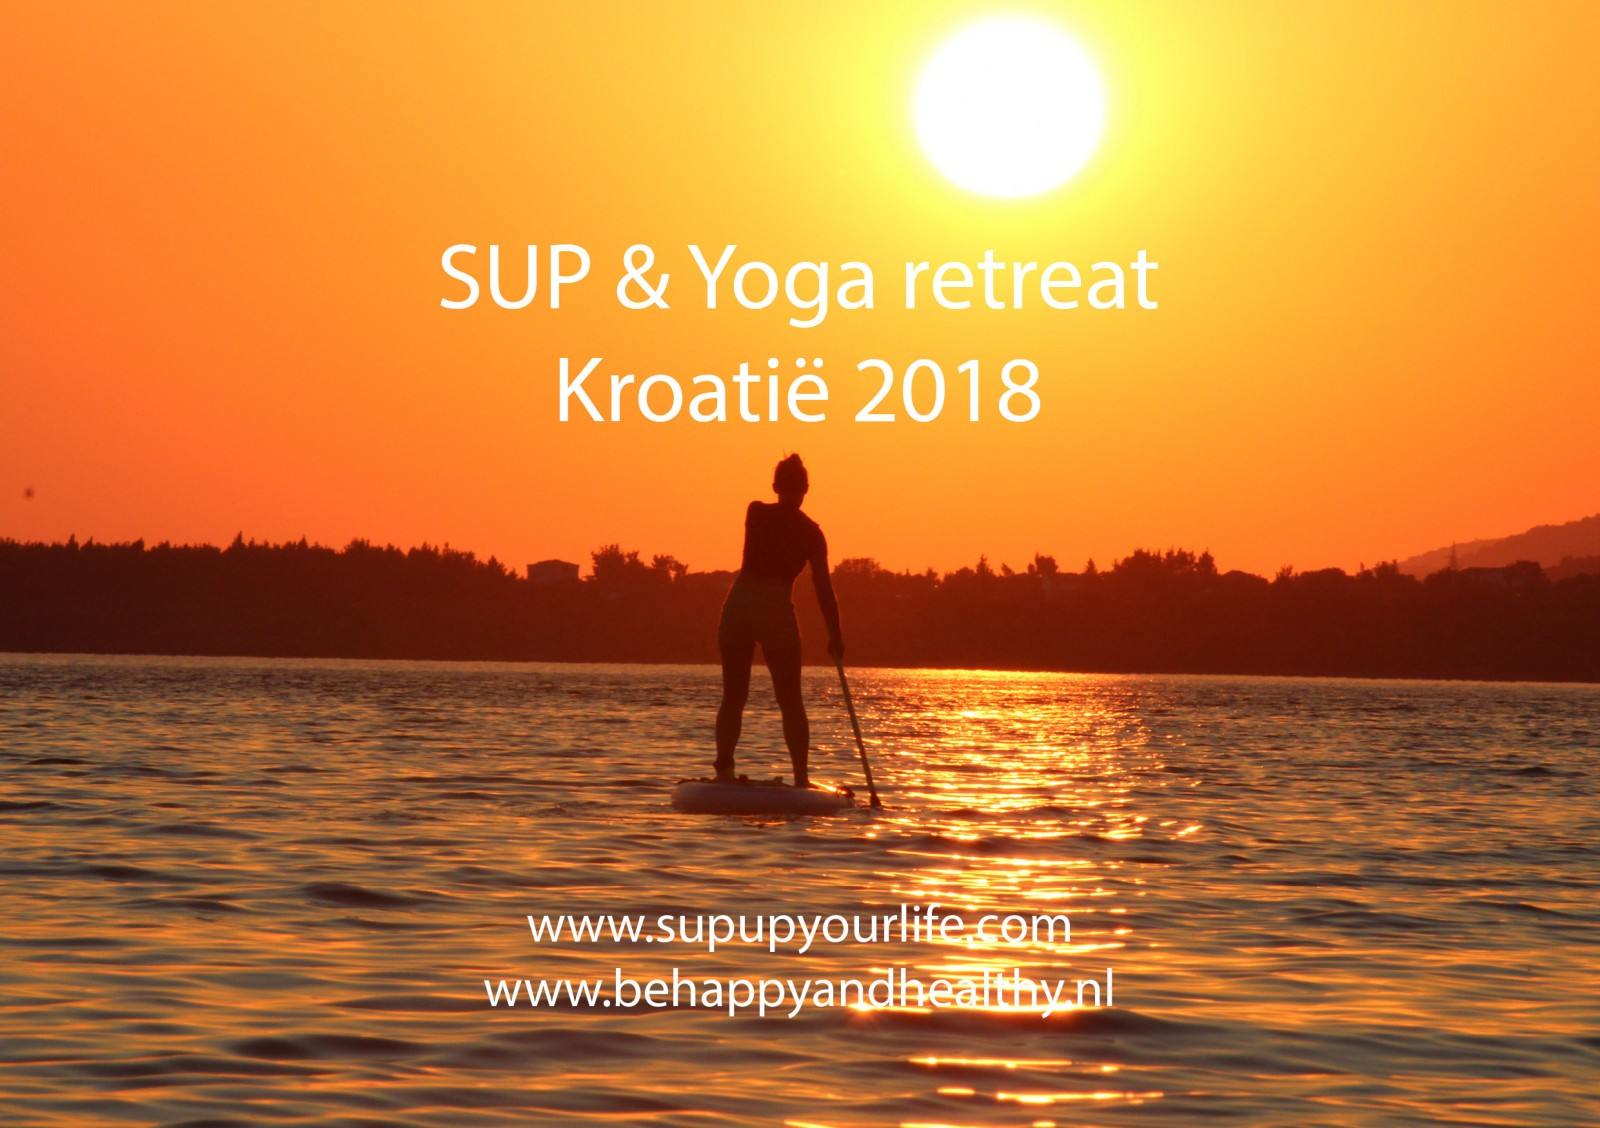 SUP & Yoga retreat Kroatië